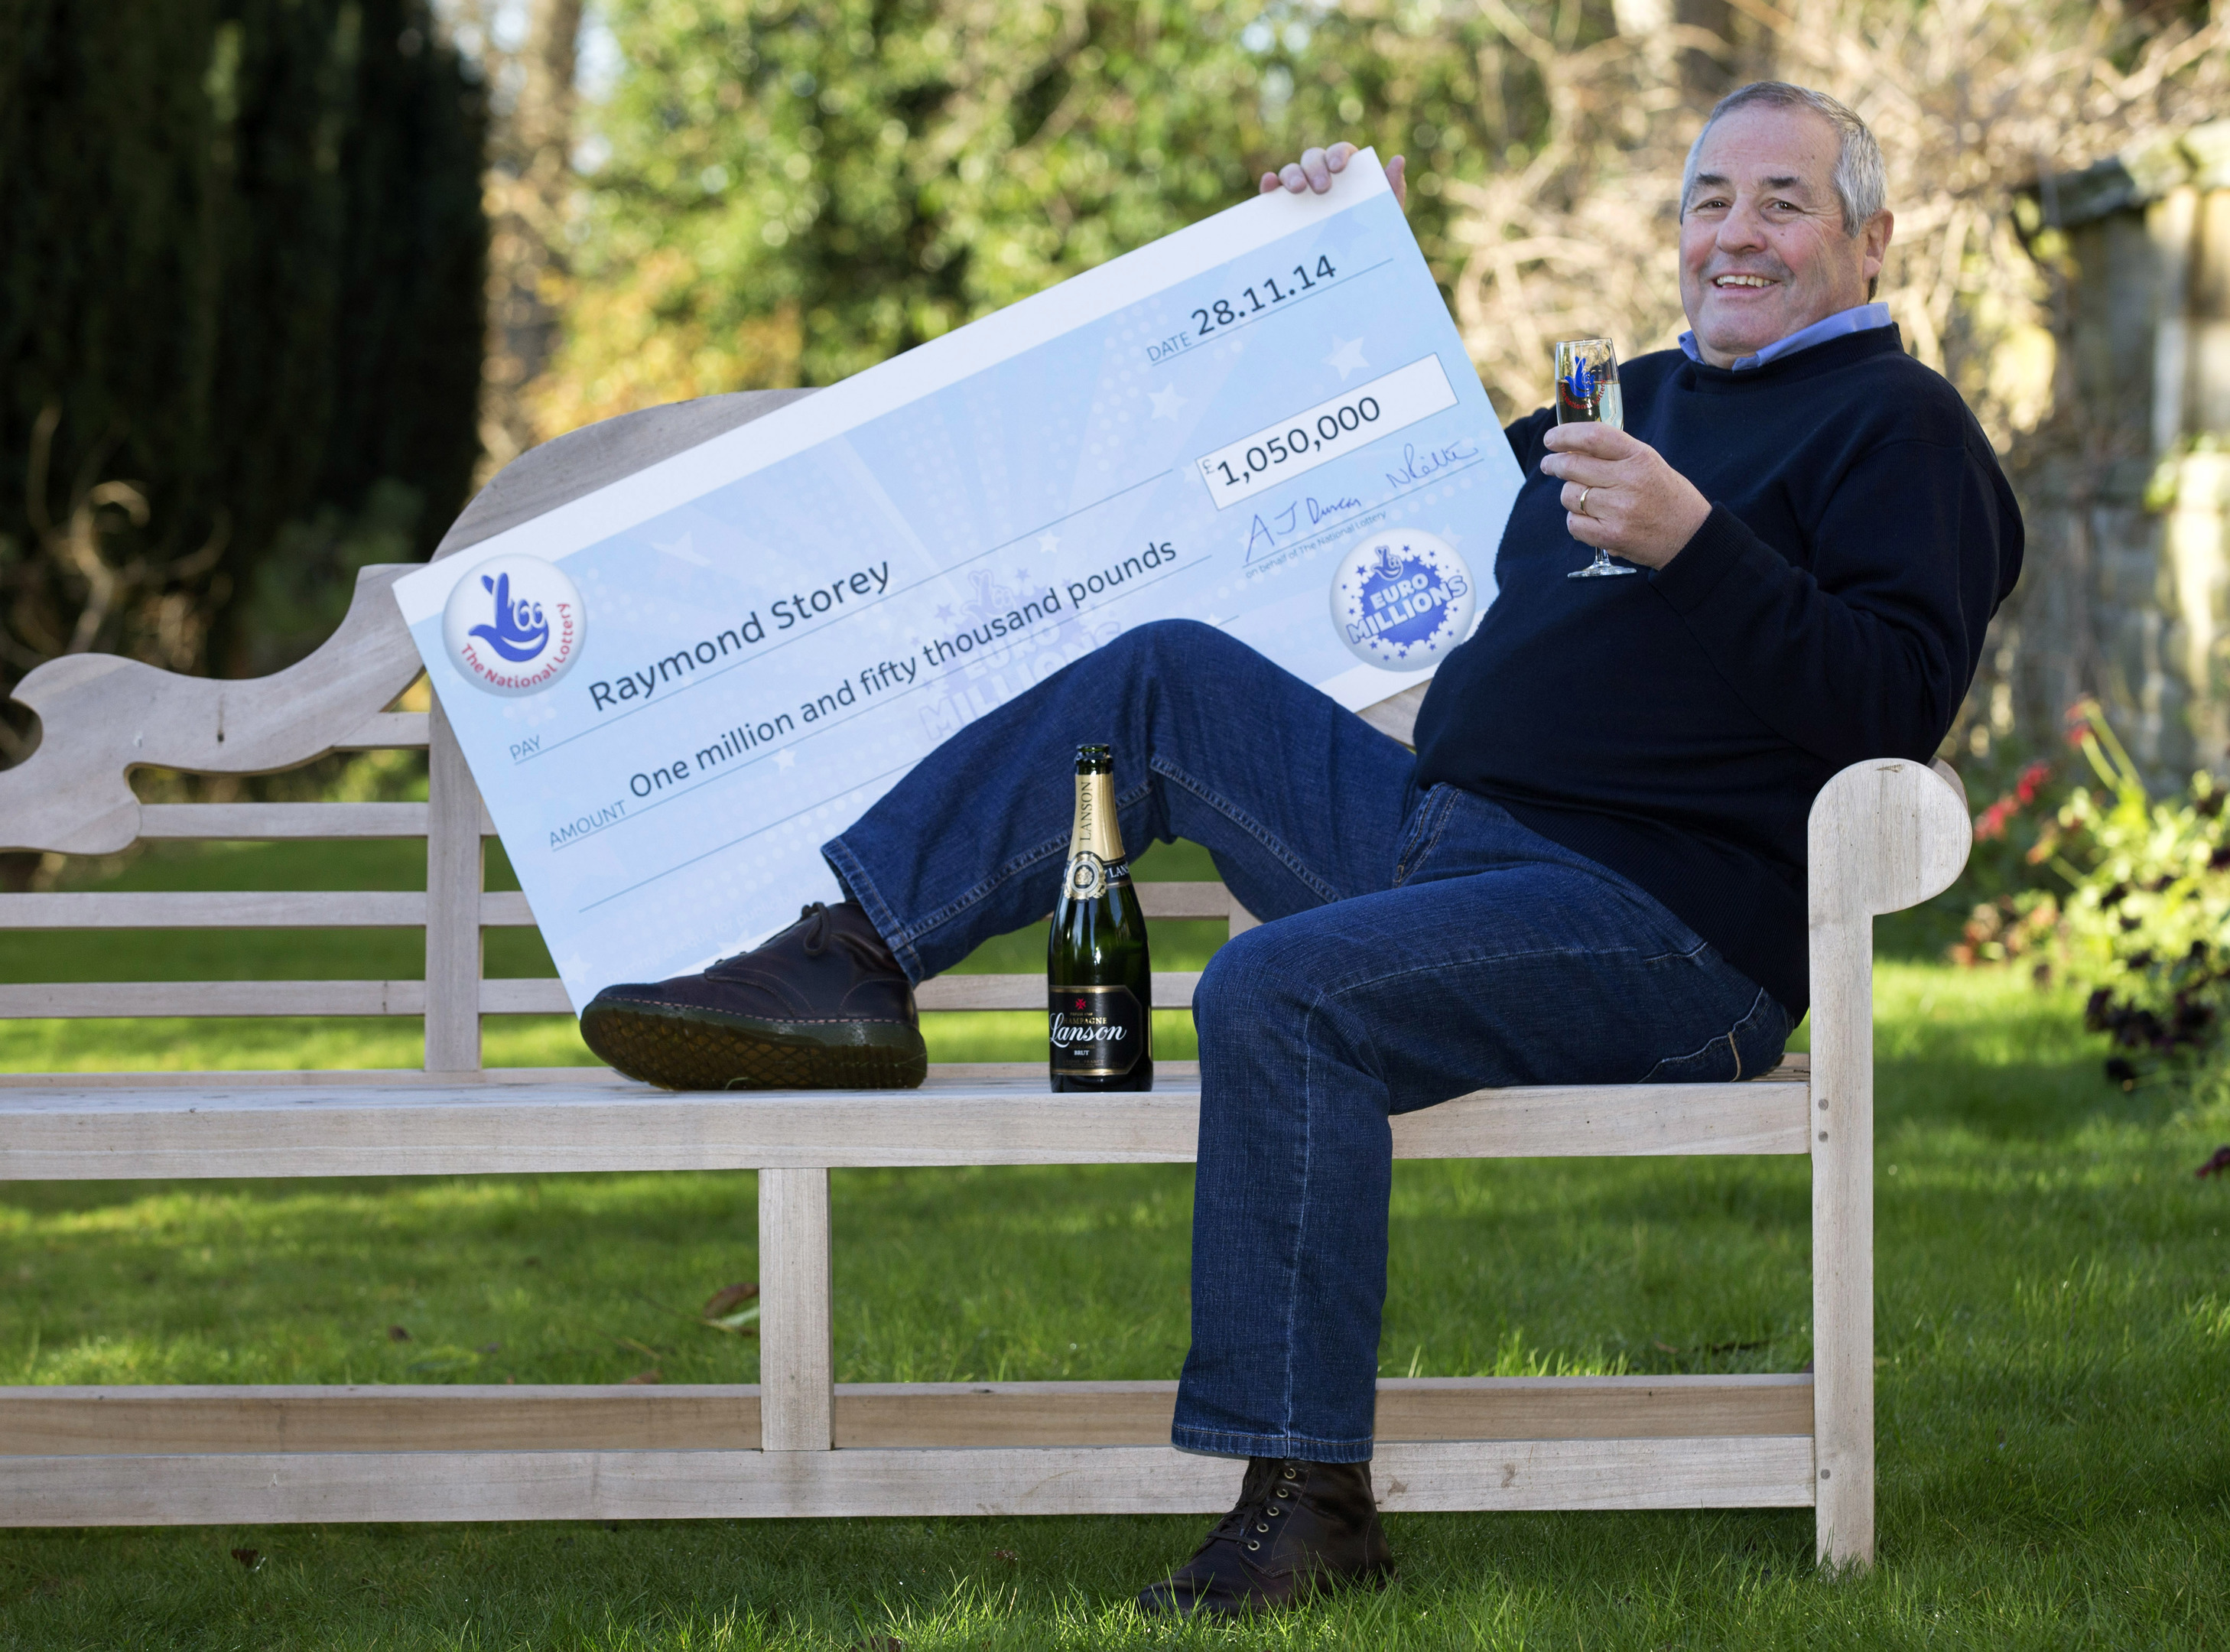 Raymond Storey, from Dundee, who won big in the lottery.